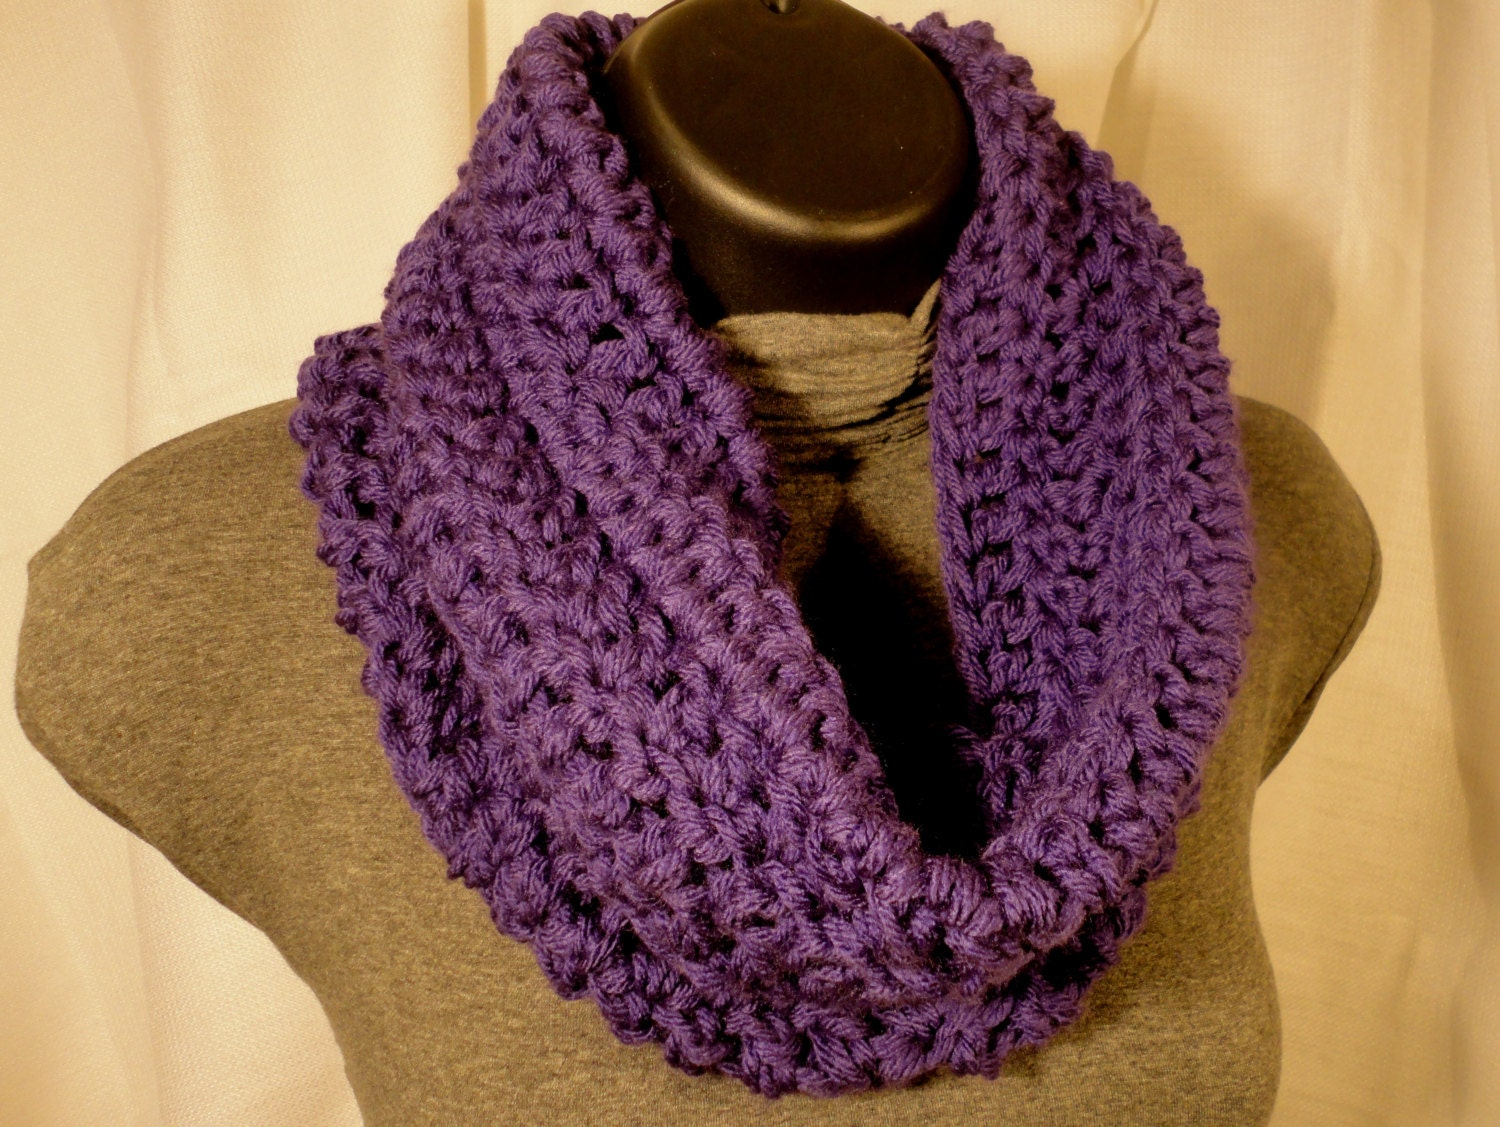 Crocheting Scarf : Crochet Scarf Cowl Neck Warmer Purple Grape by VillaYarnDesigns Cowl ...